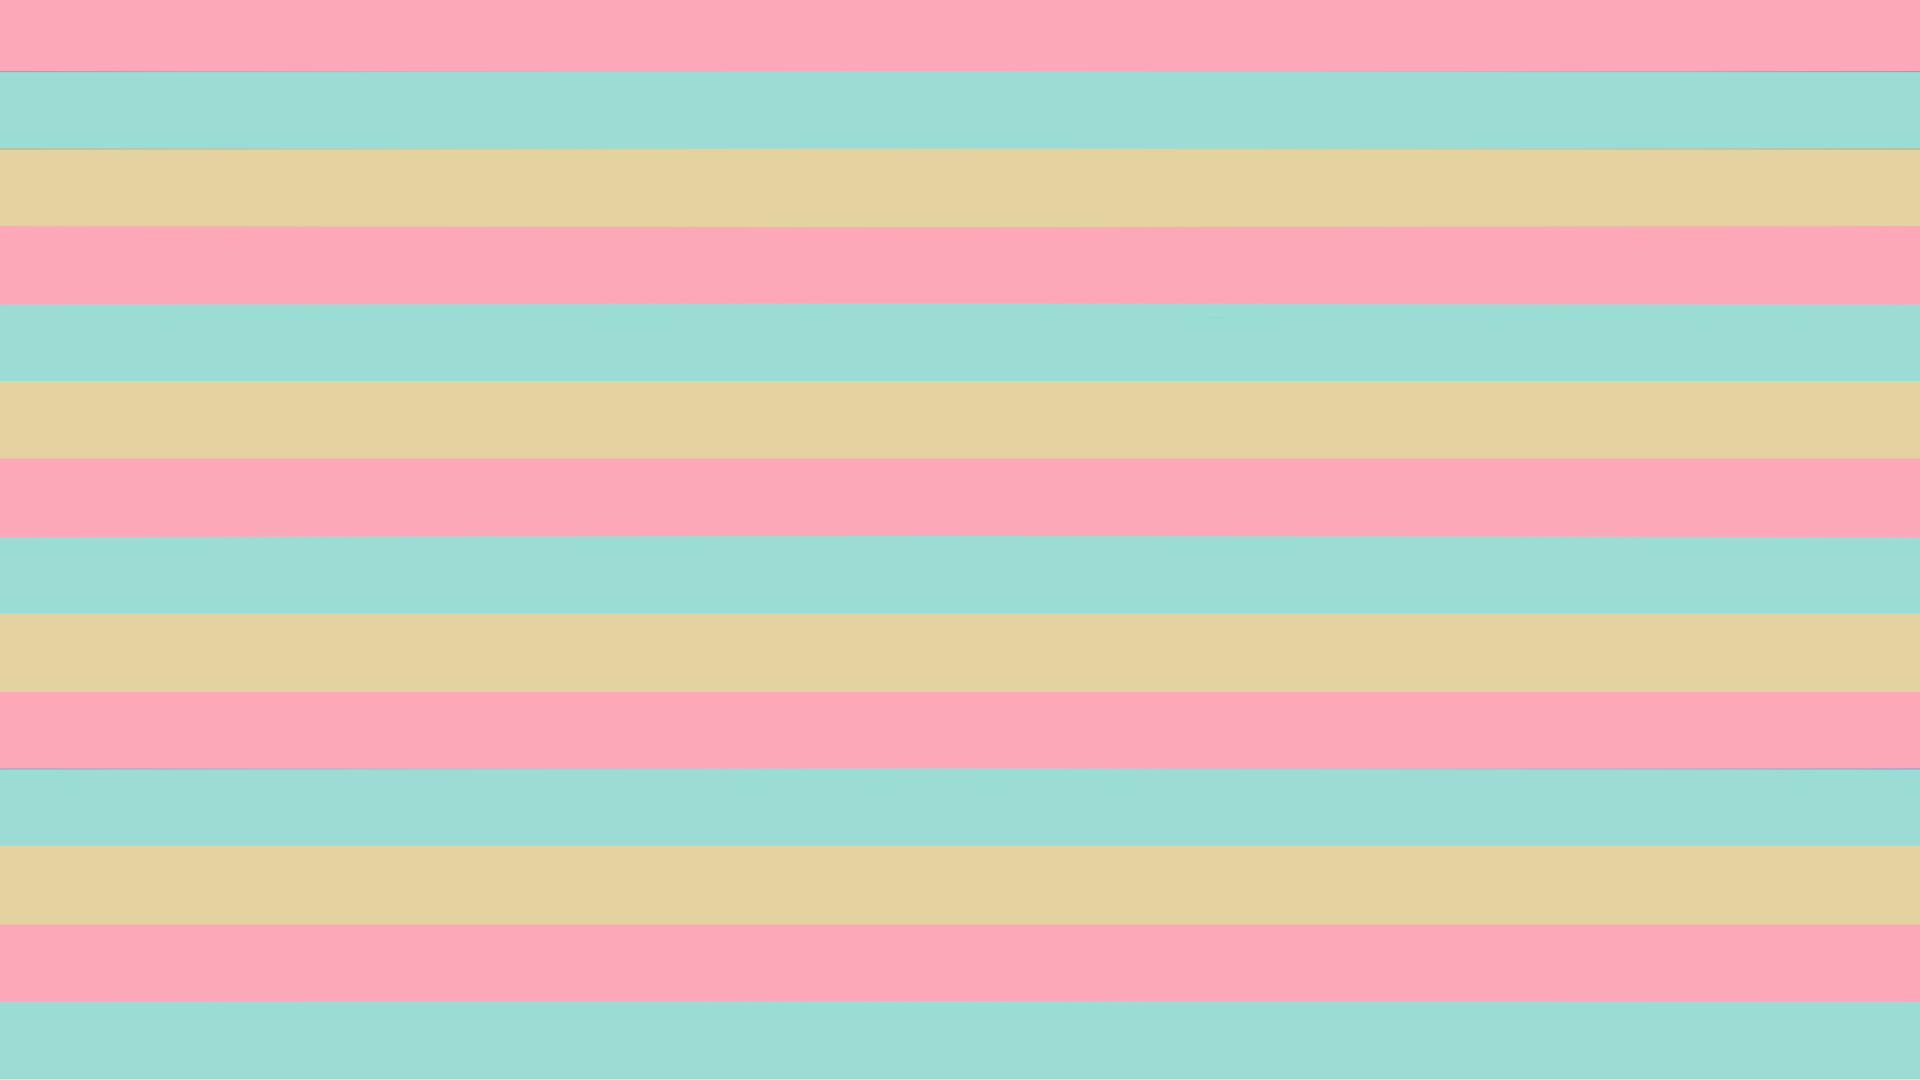 Golf Wang Striped Pc Wallpaper